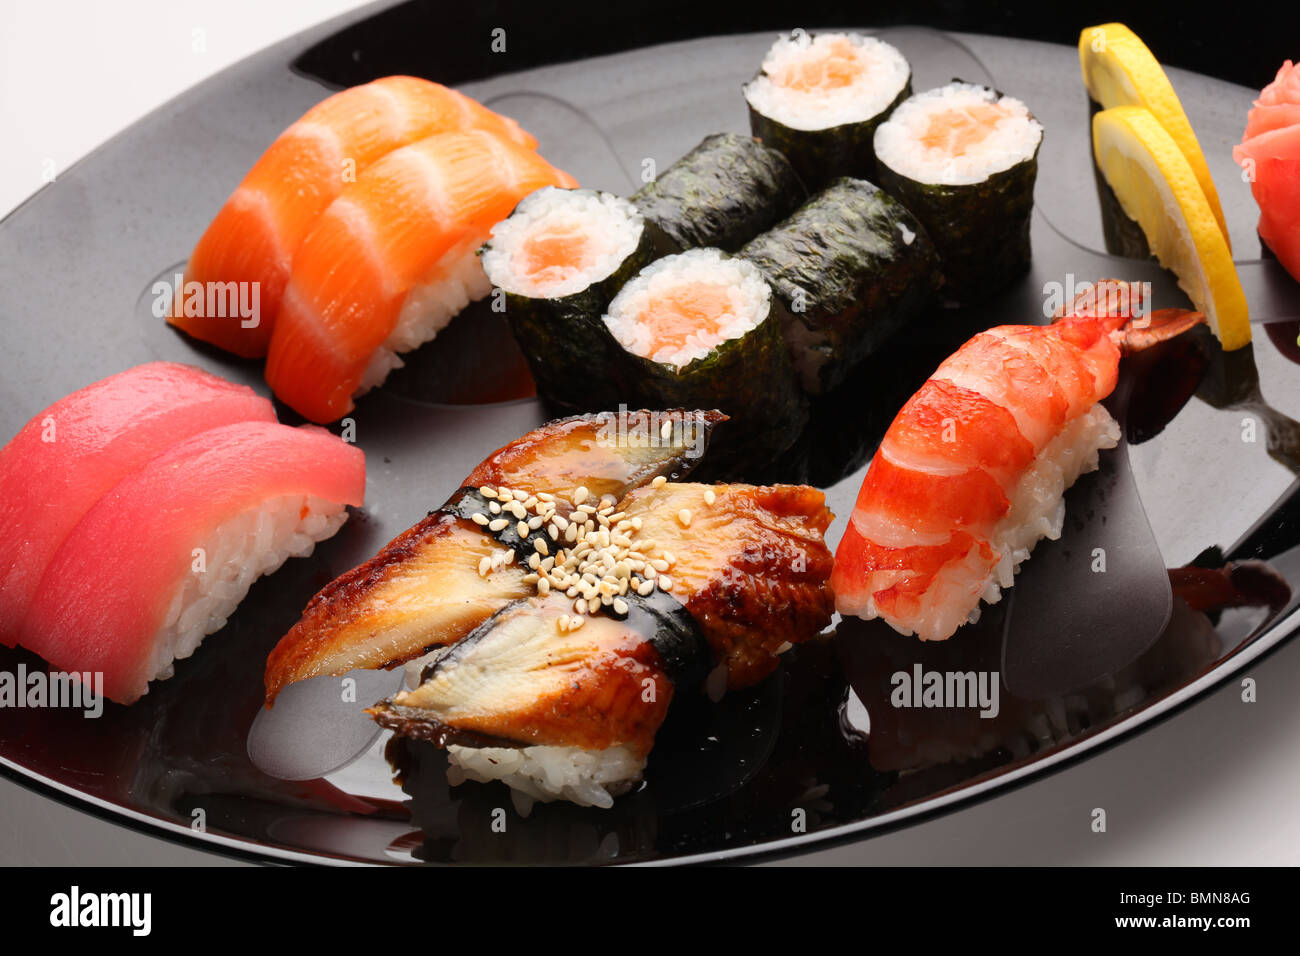 set of Japanese sushi on a plate - Stock Image